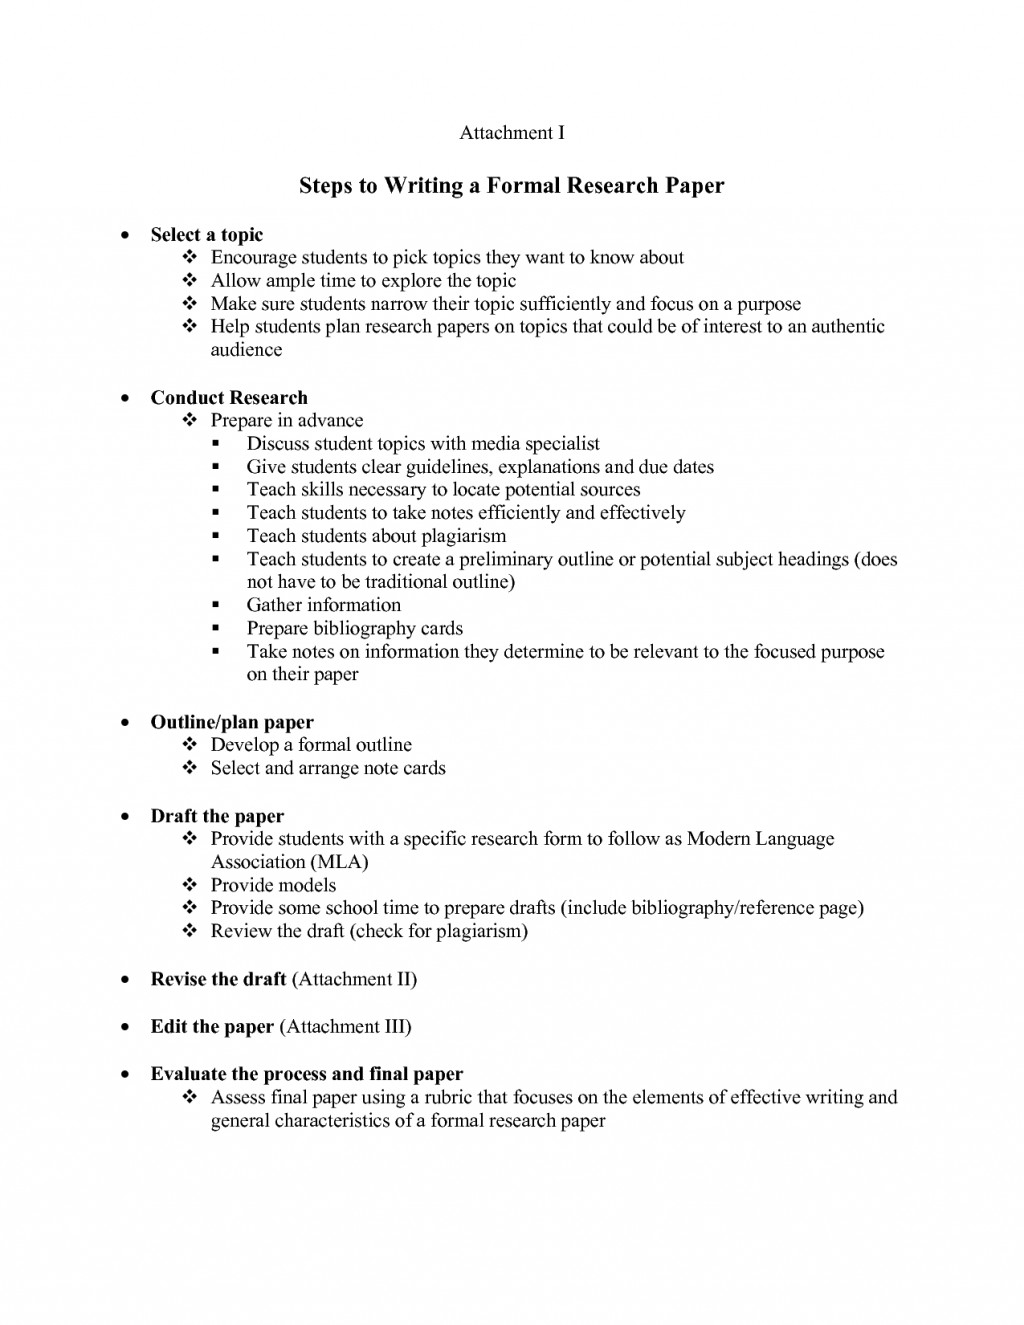 008 Fq06gka7nb Research Paper Example Of Preliminary Outline Dreaded For Large